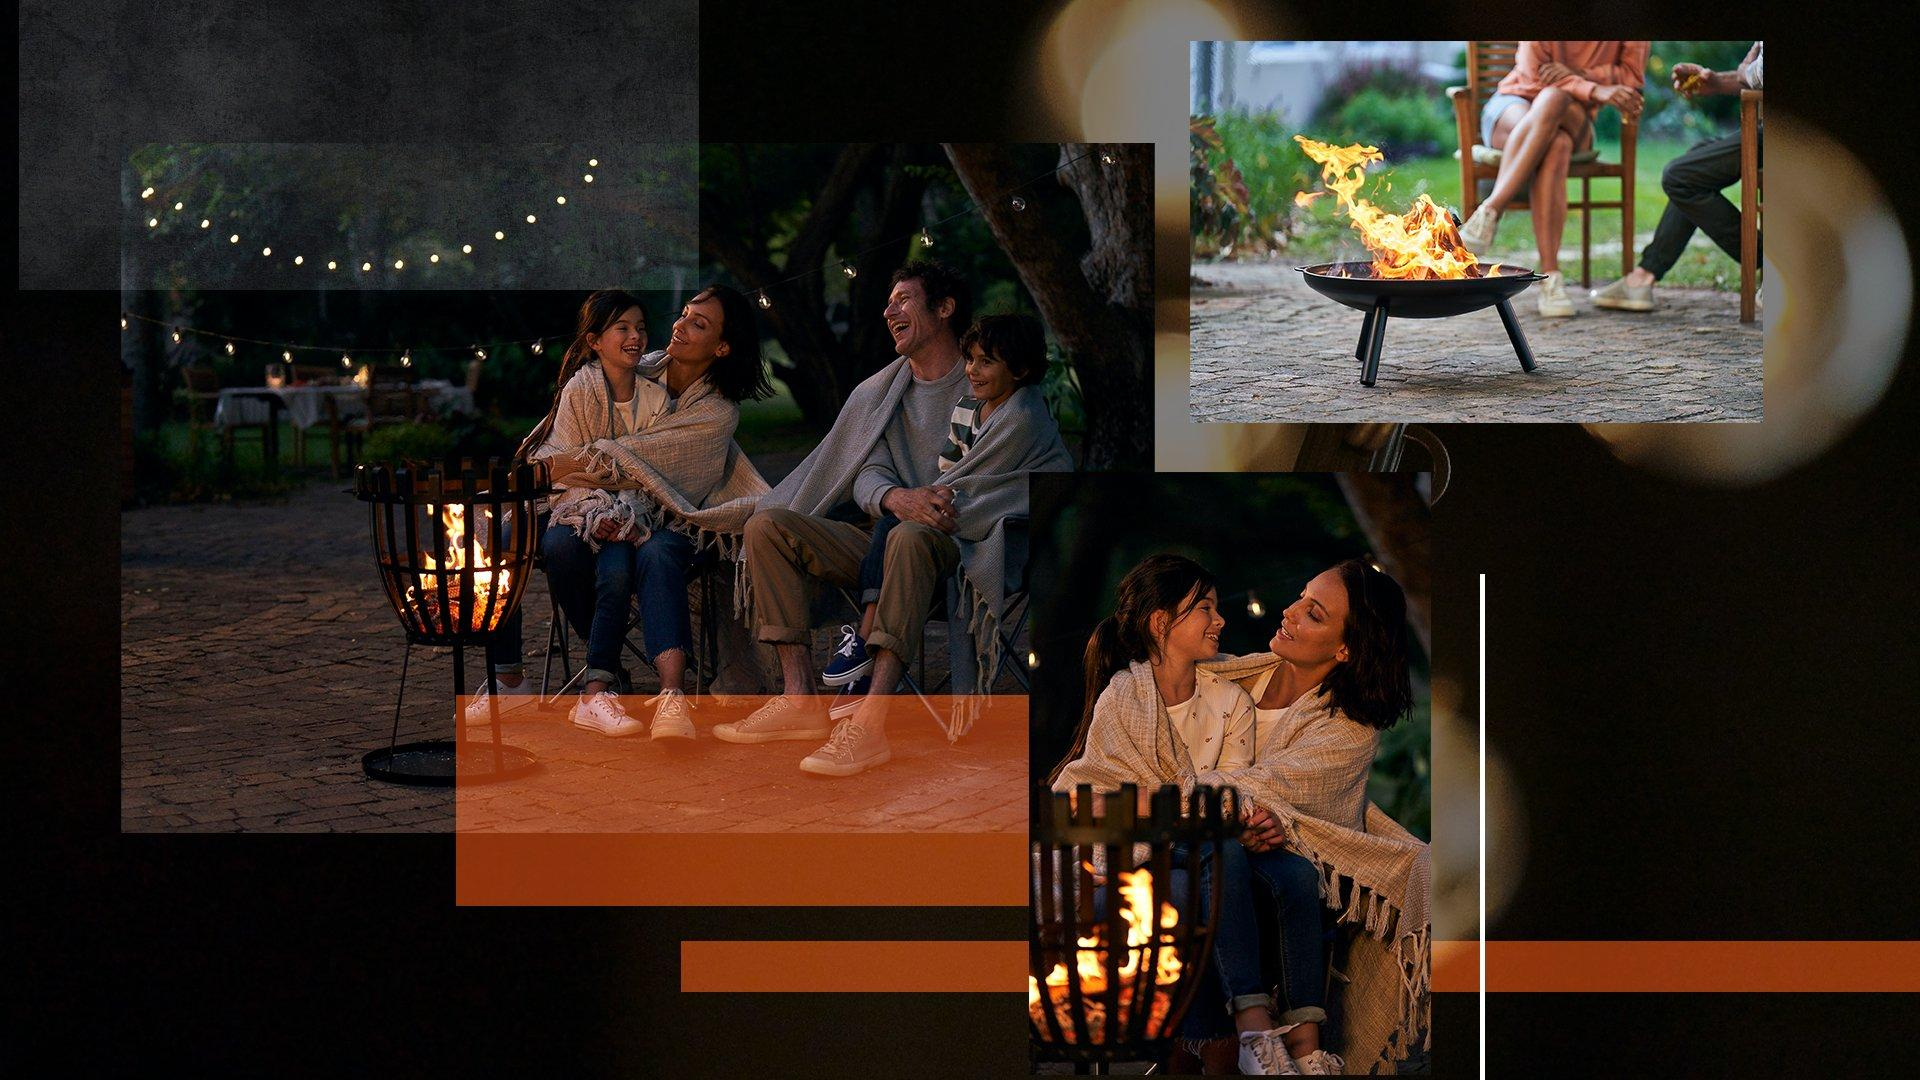 A collage of images showcasing a selection of fire pits in a night time setting, including a scene of a family of four gathered around a fire pit.